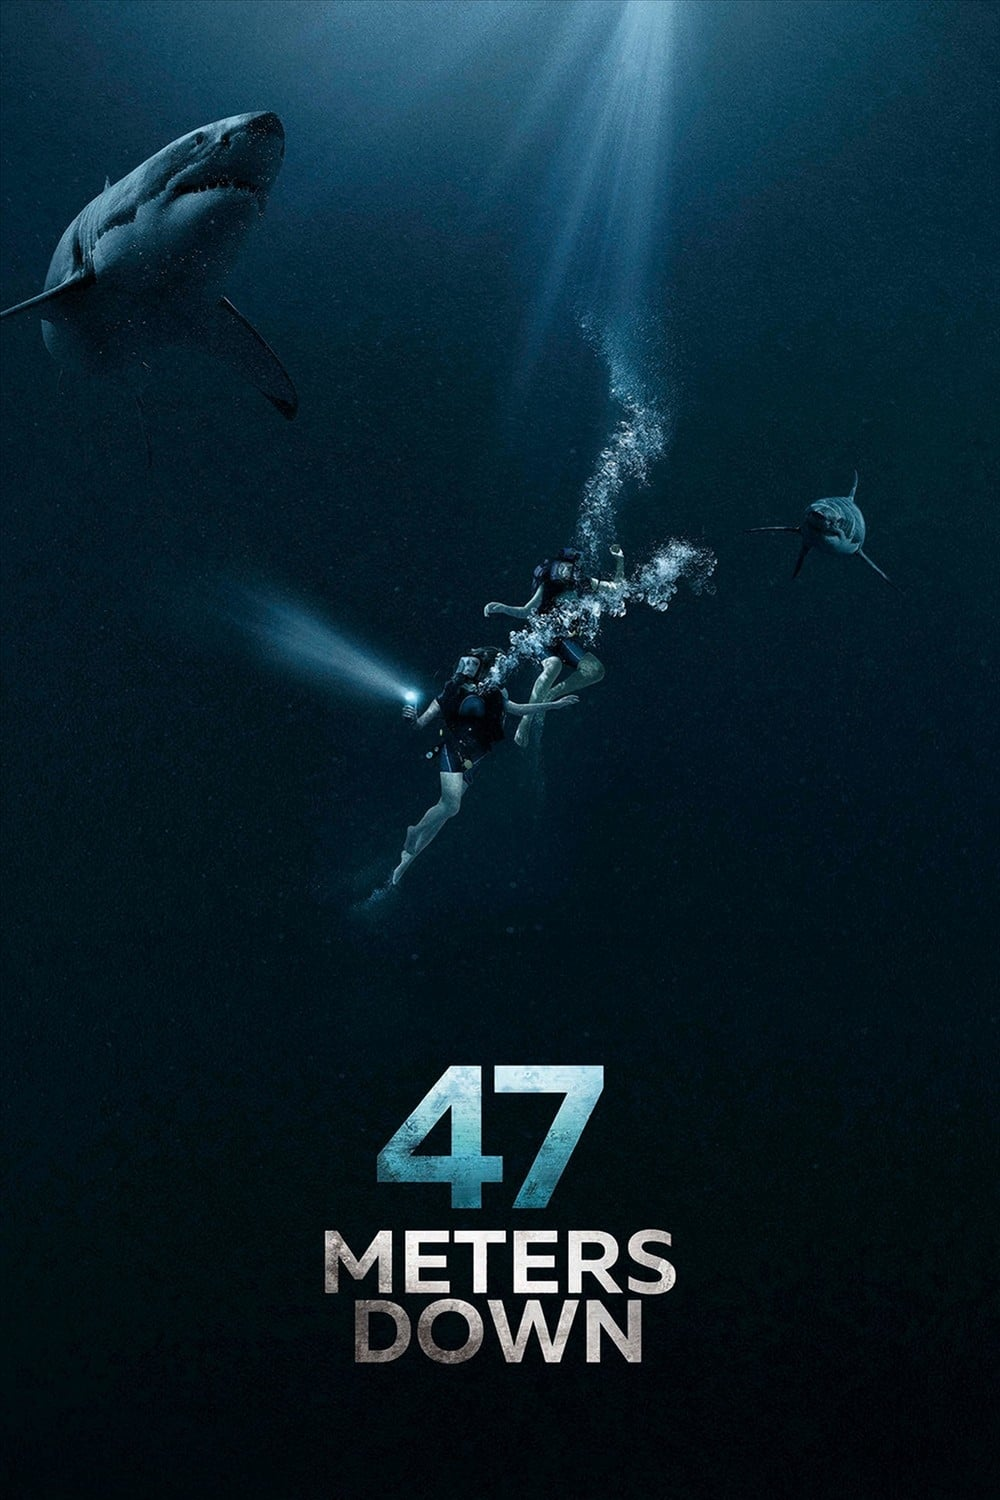 image for 47 Meters Down